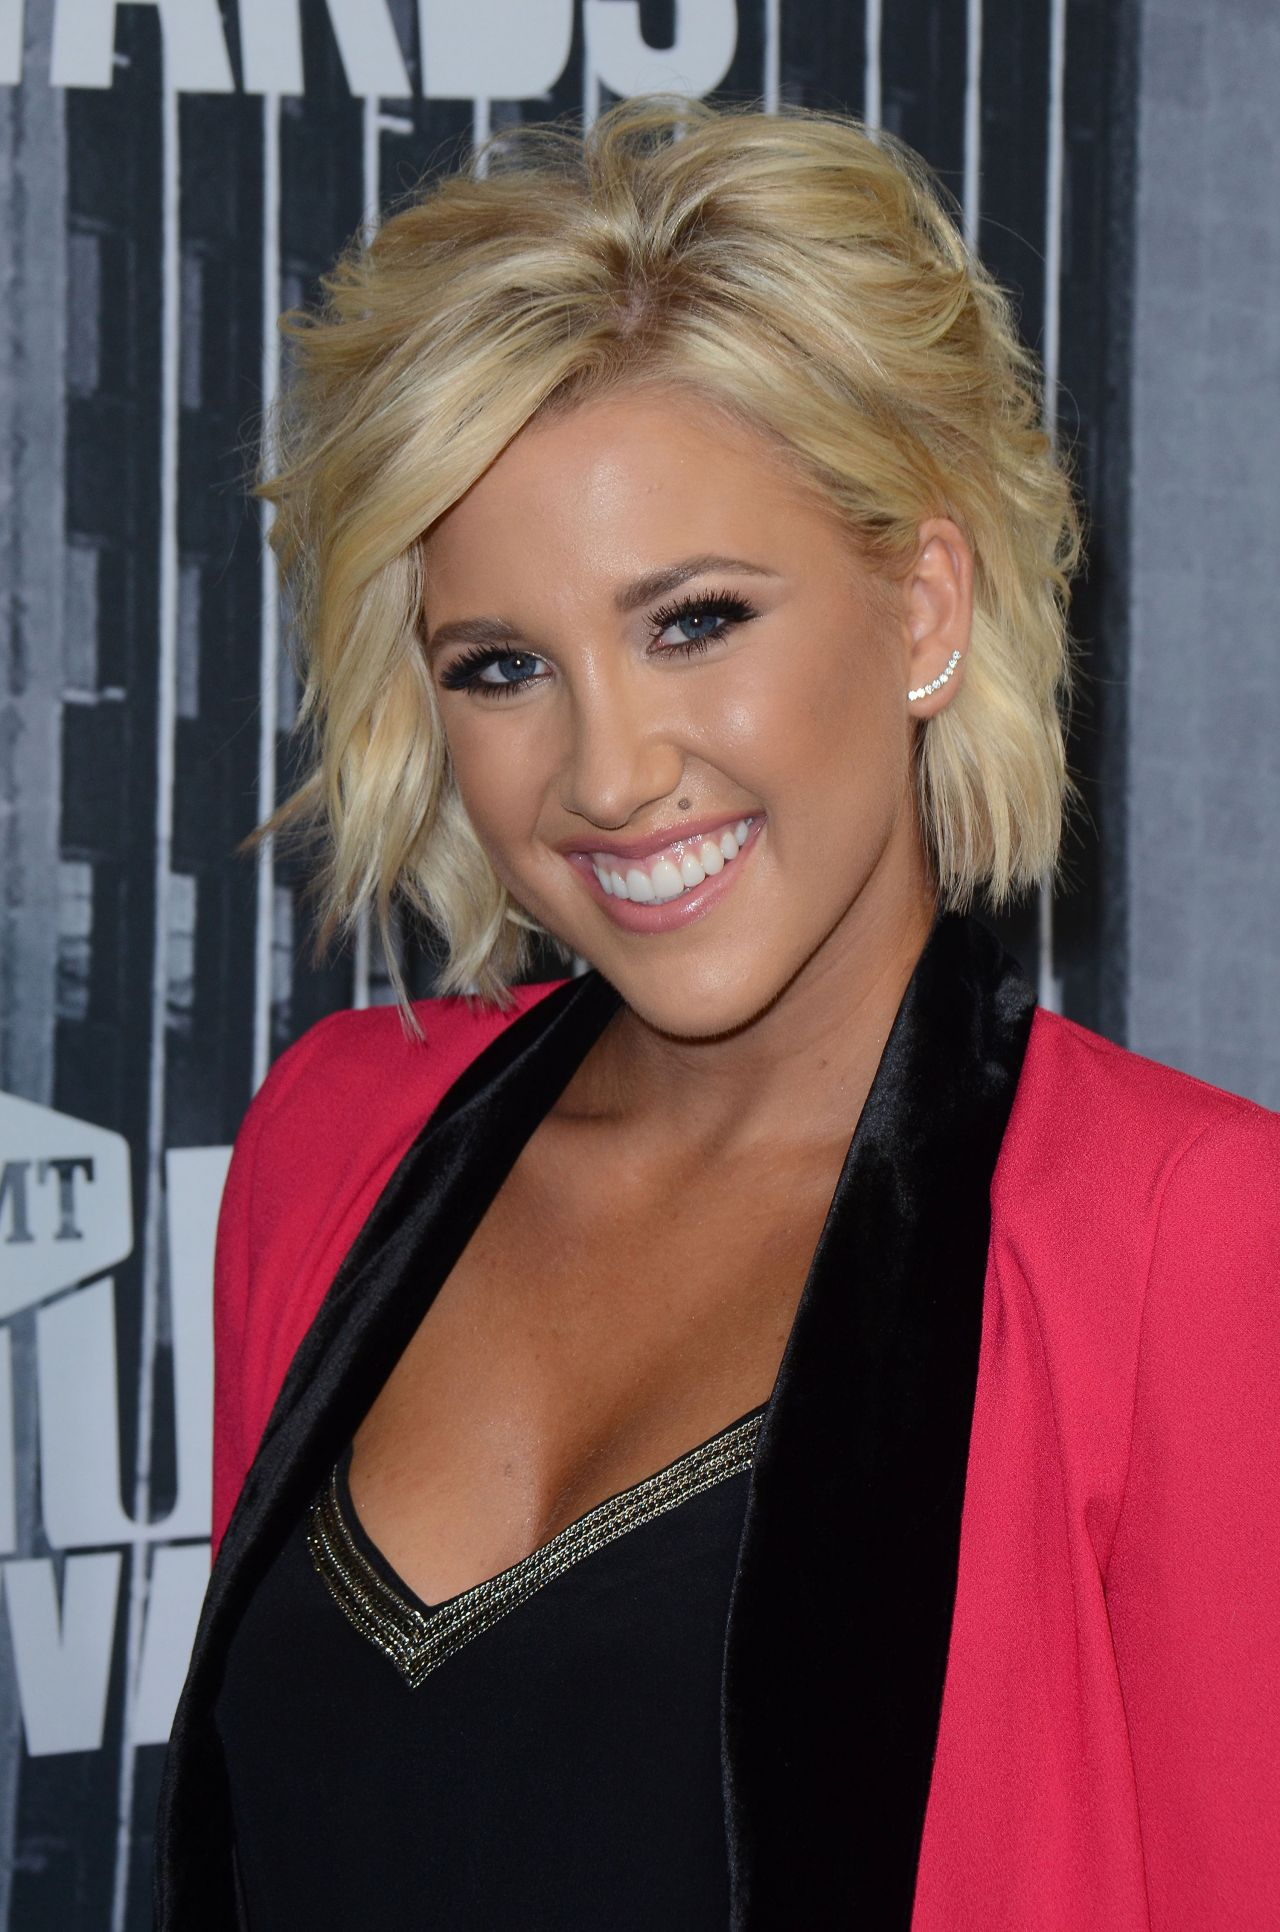 Savannah Chrisley Latest Photos Celebmafia